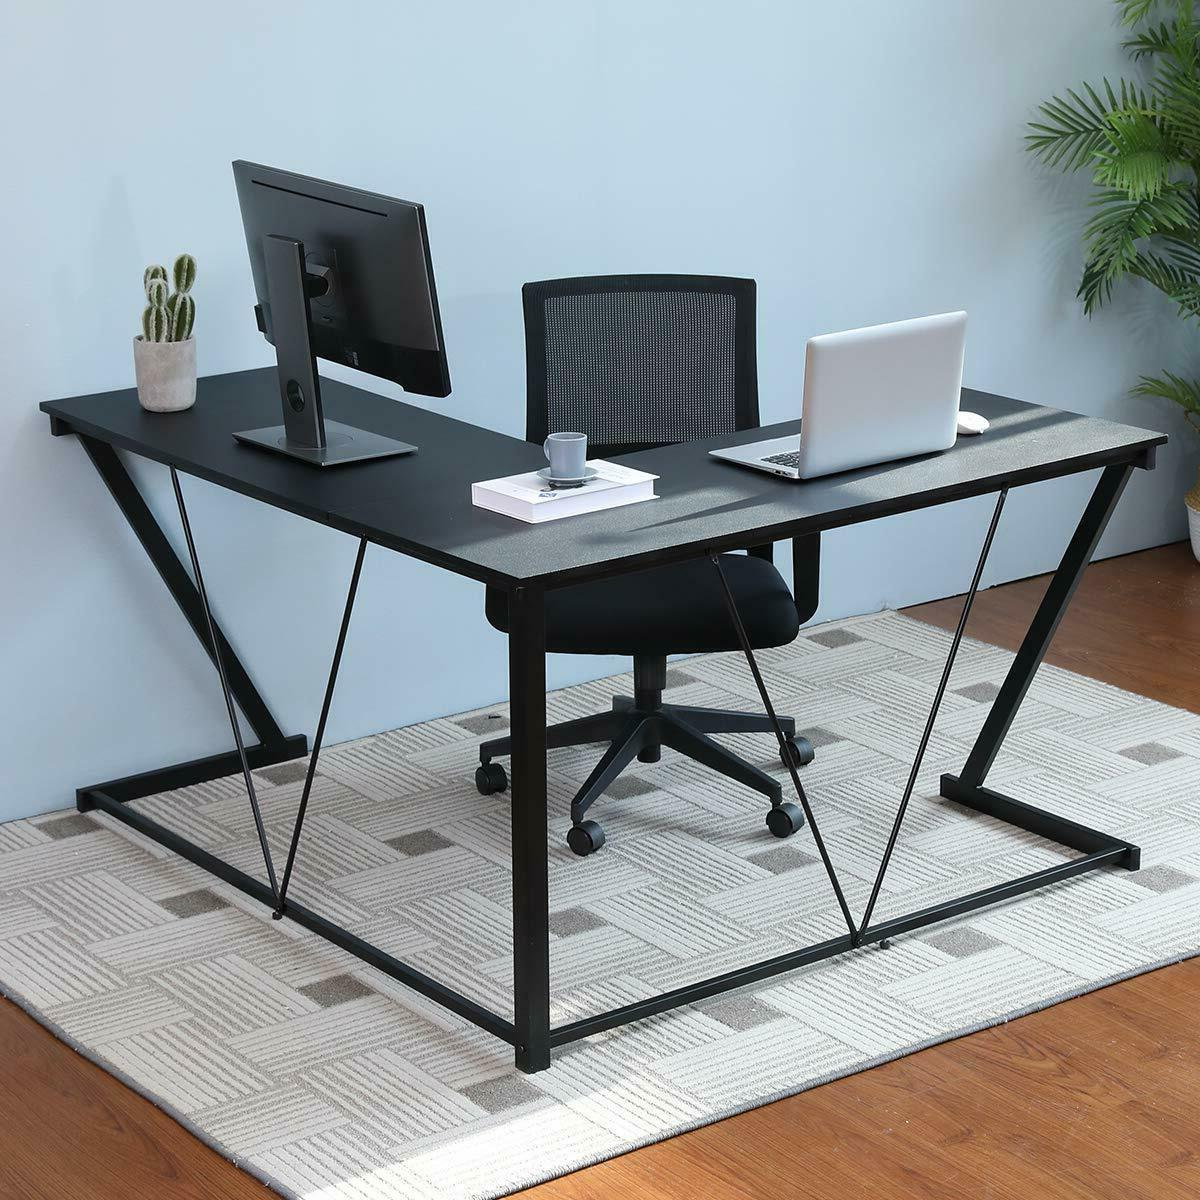 Computer Gaming Office Home Desk L-Shaped Metal Table Black